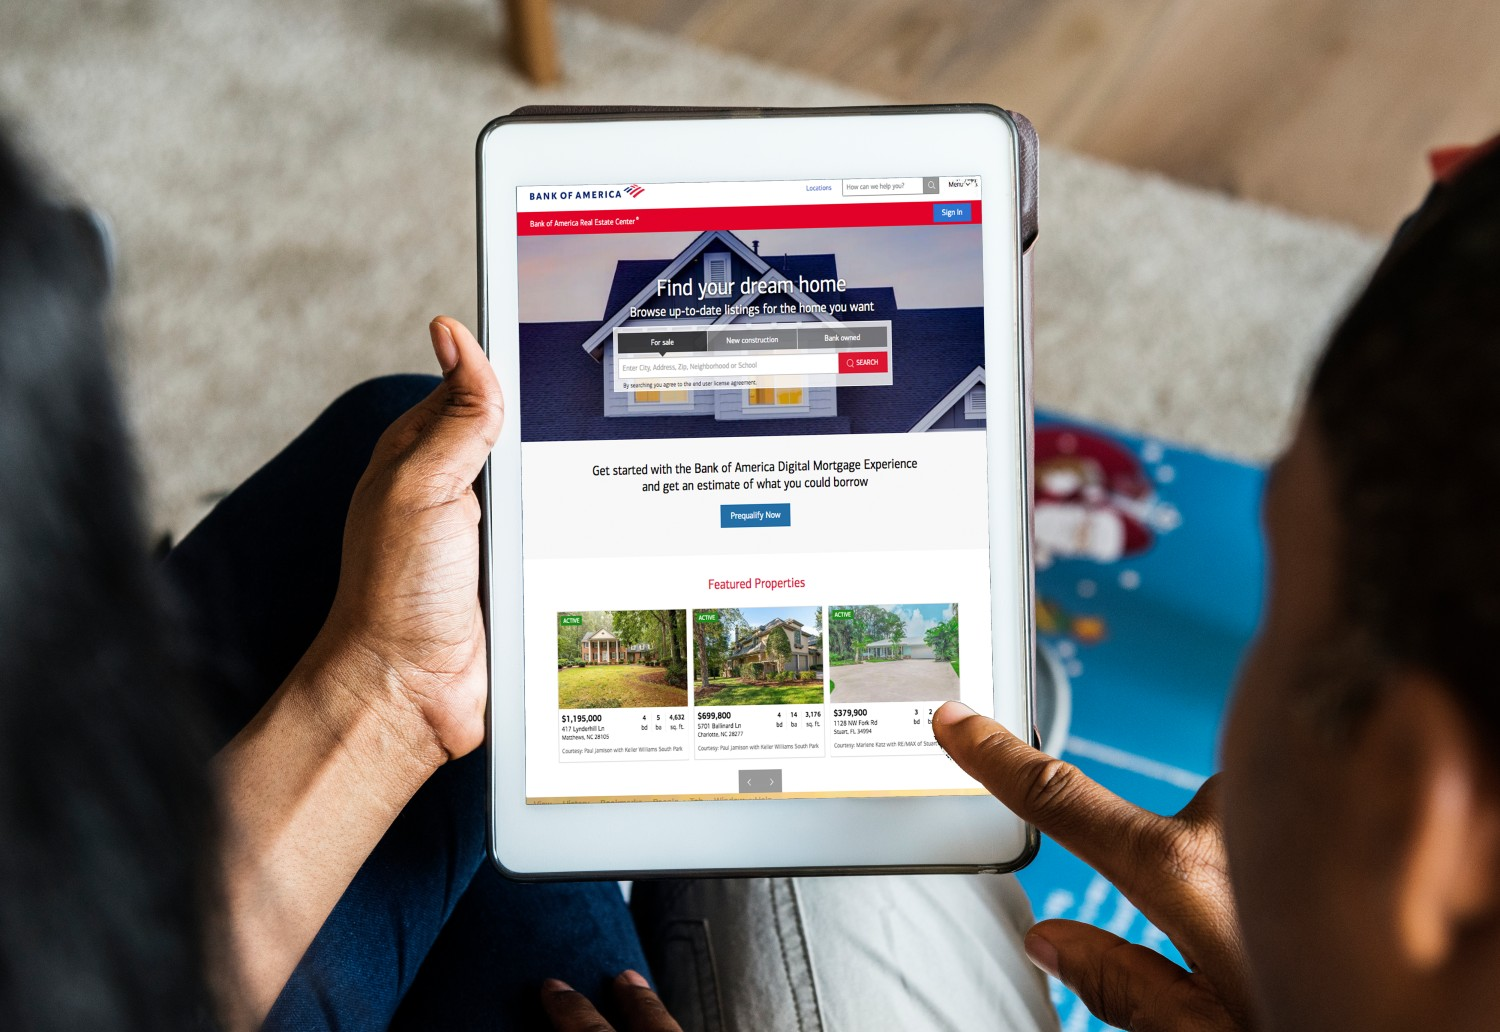 Mortgage Banking Solution: Bank of America's Digital Mortgage Platform Increases Applications